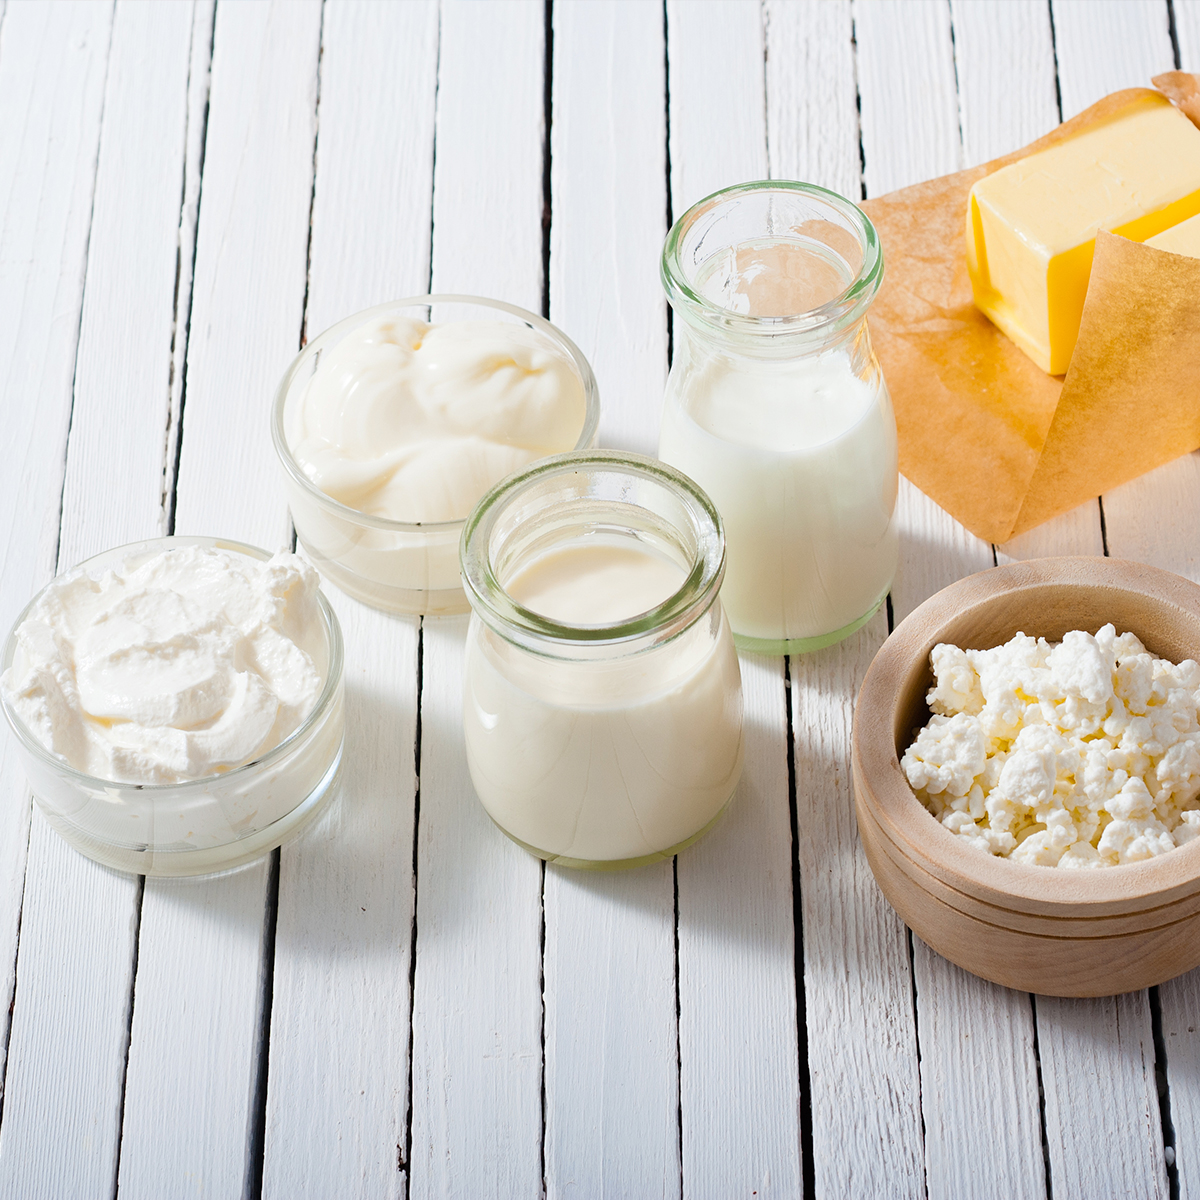 A Dash of Dairy: Easy Ways to Add Nutrition and Flavor